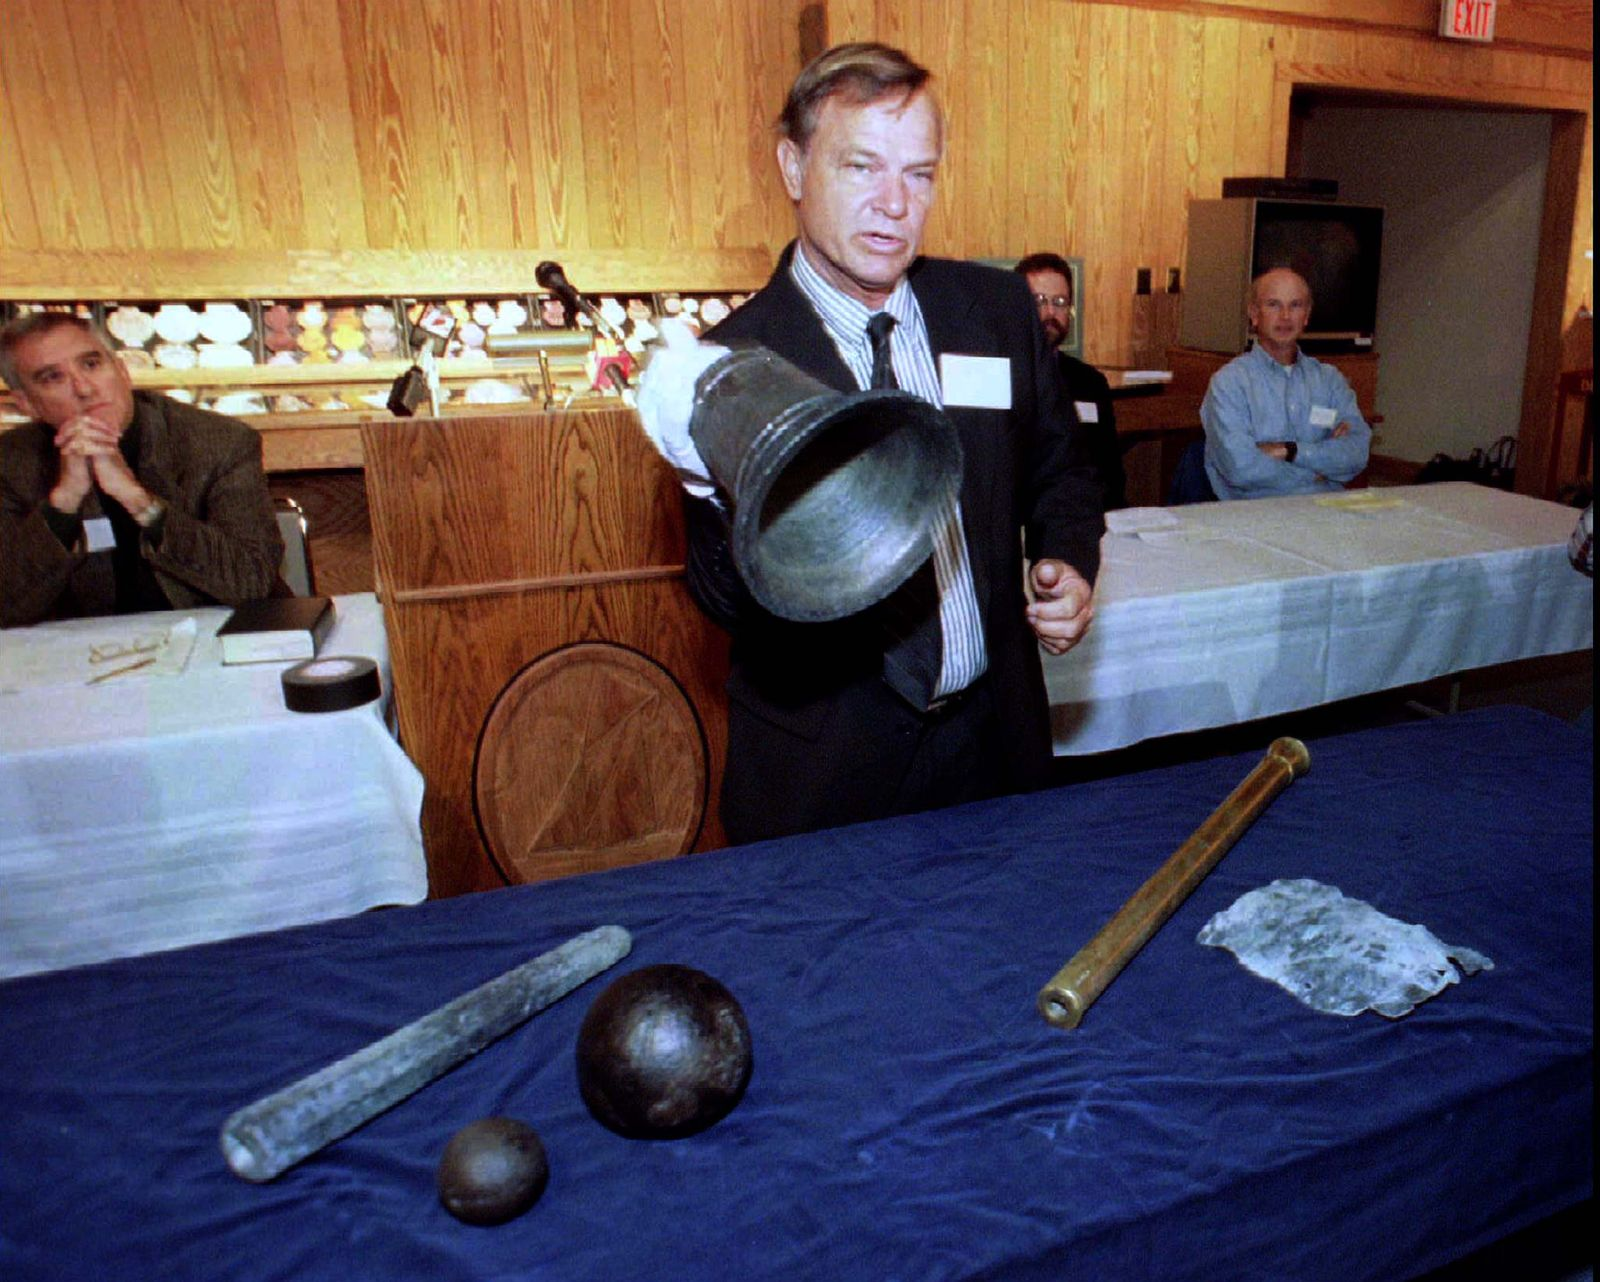 MARITIME REASEARCH REPRESENTATIVE DISPLAYS RECOVERED BELL